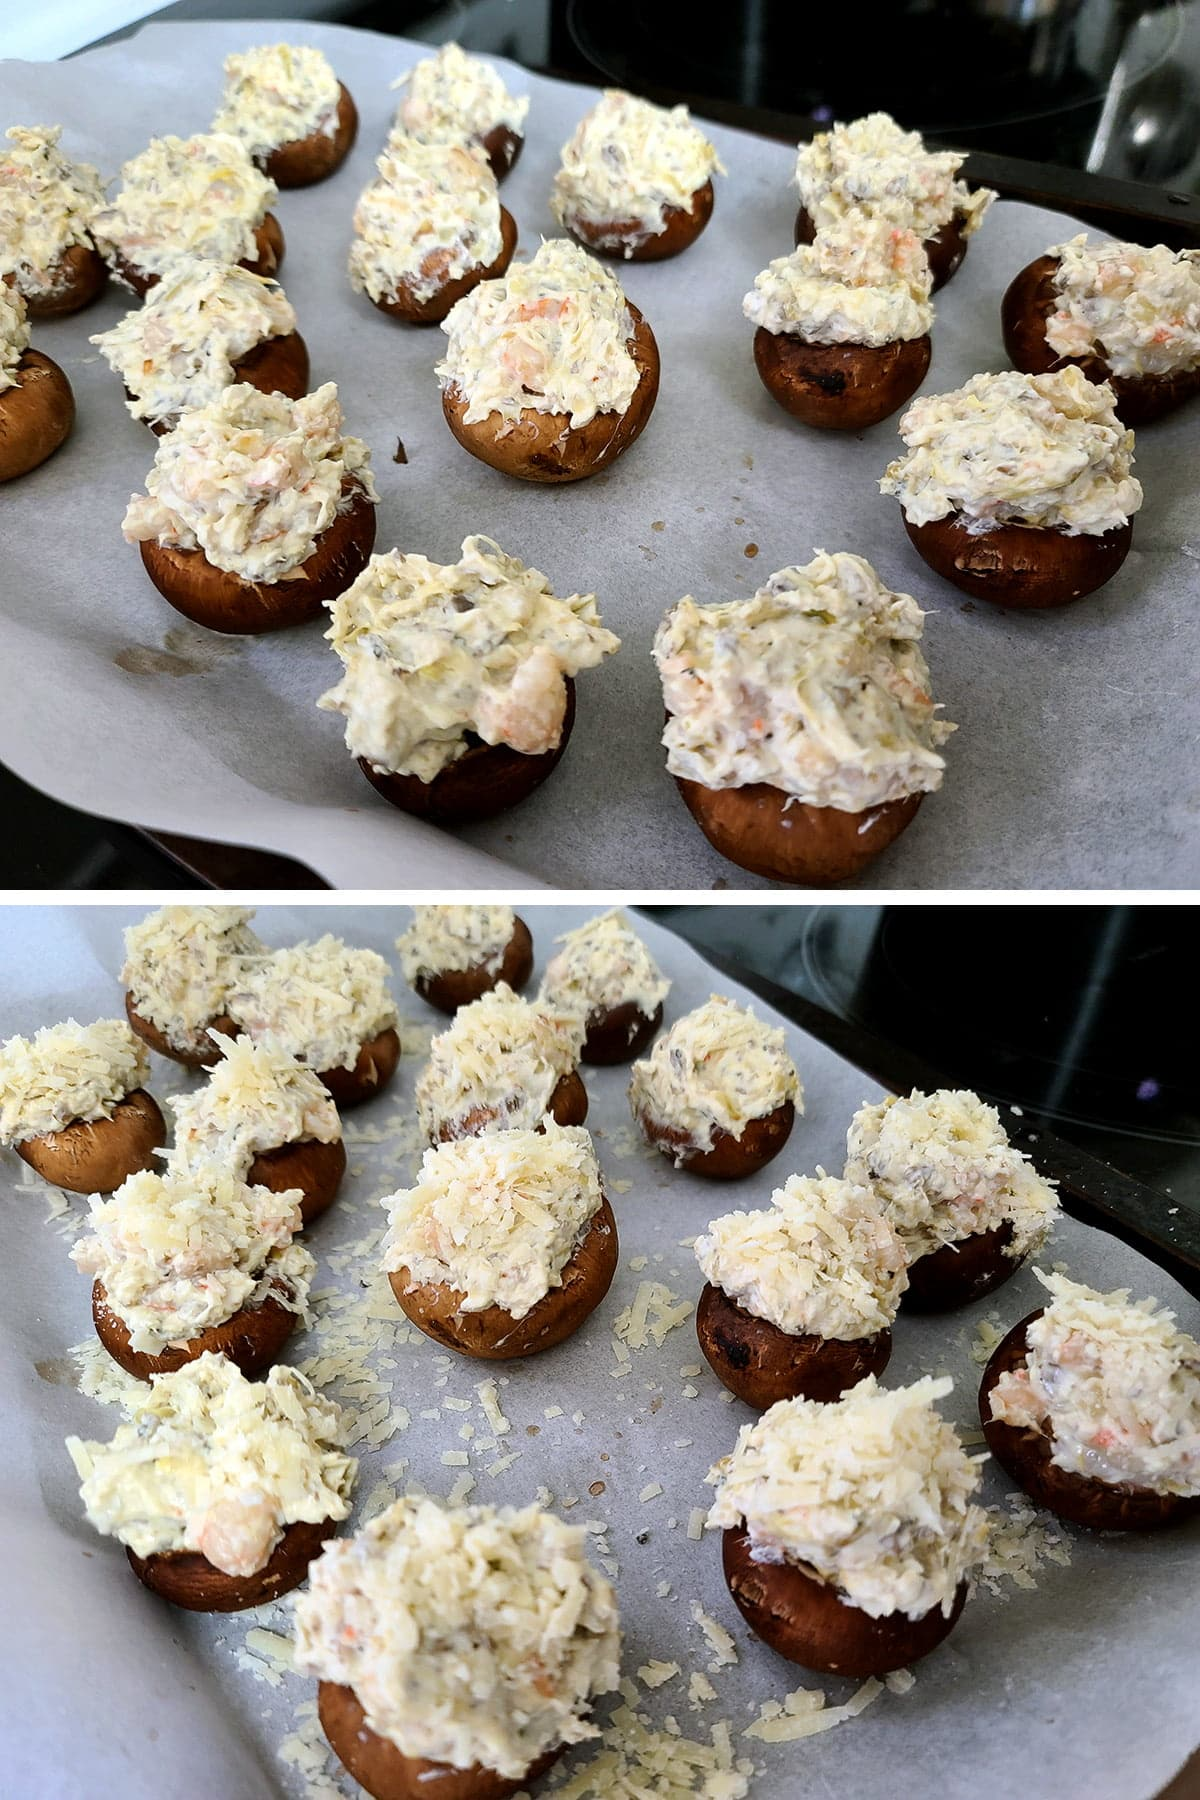 A two part compilation image showing the stuffed mushrooms before and after the grated cheese is added to the top.